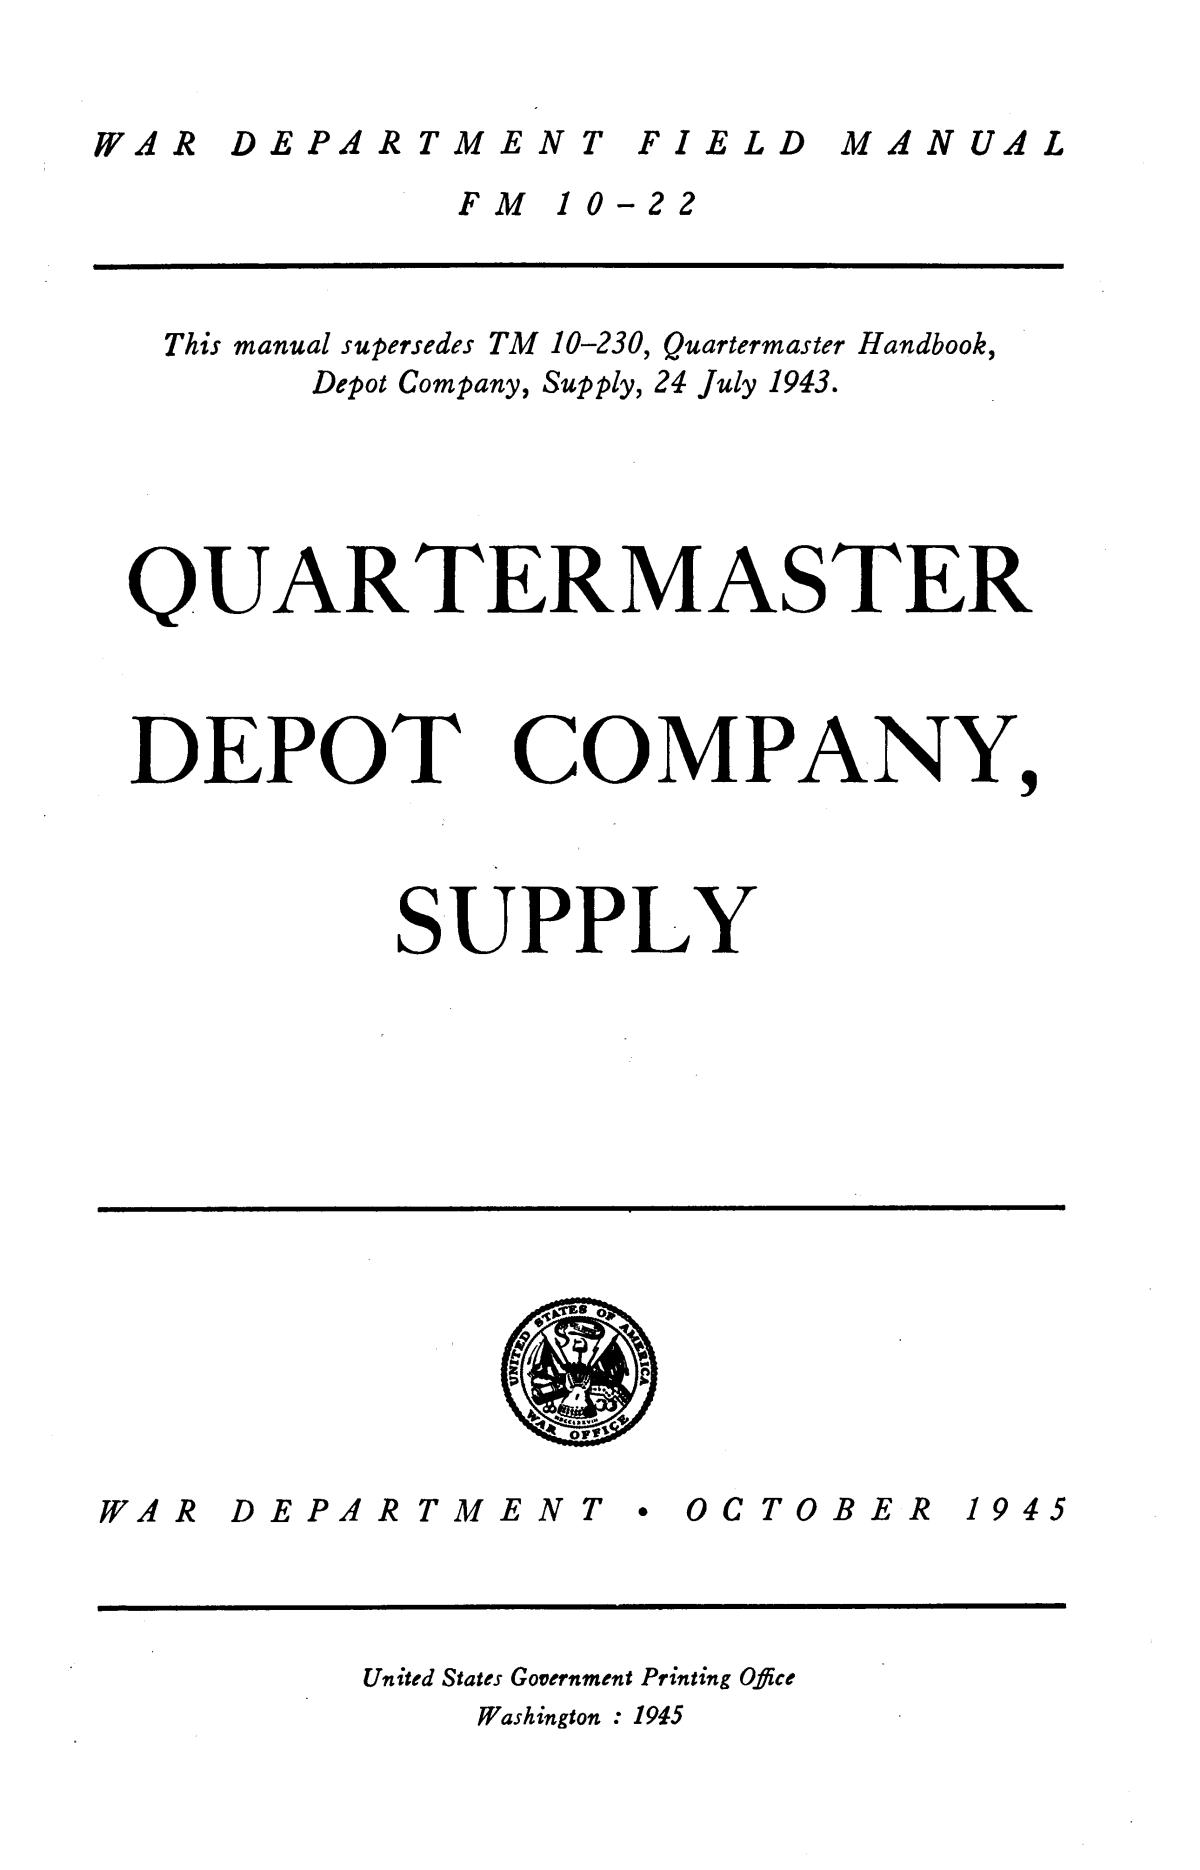 Quartermaster depot company, supply.                                                                                                      I